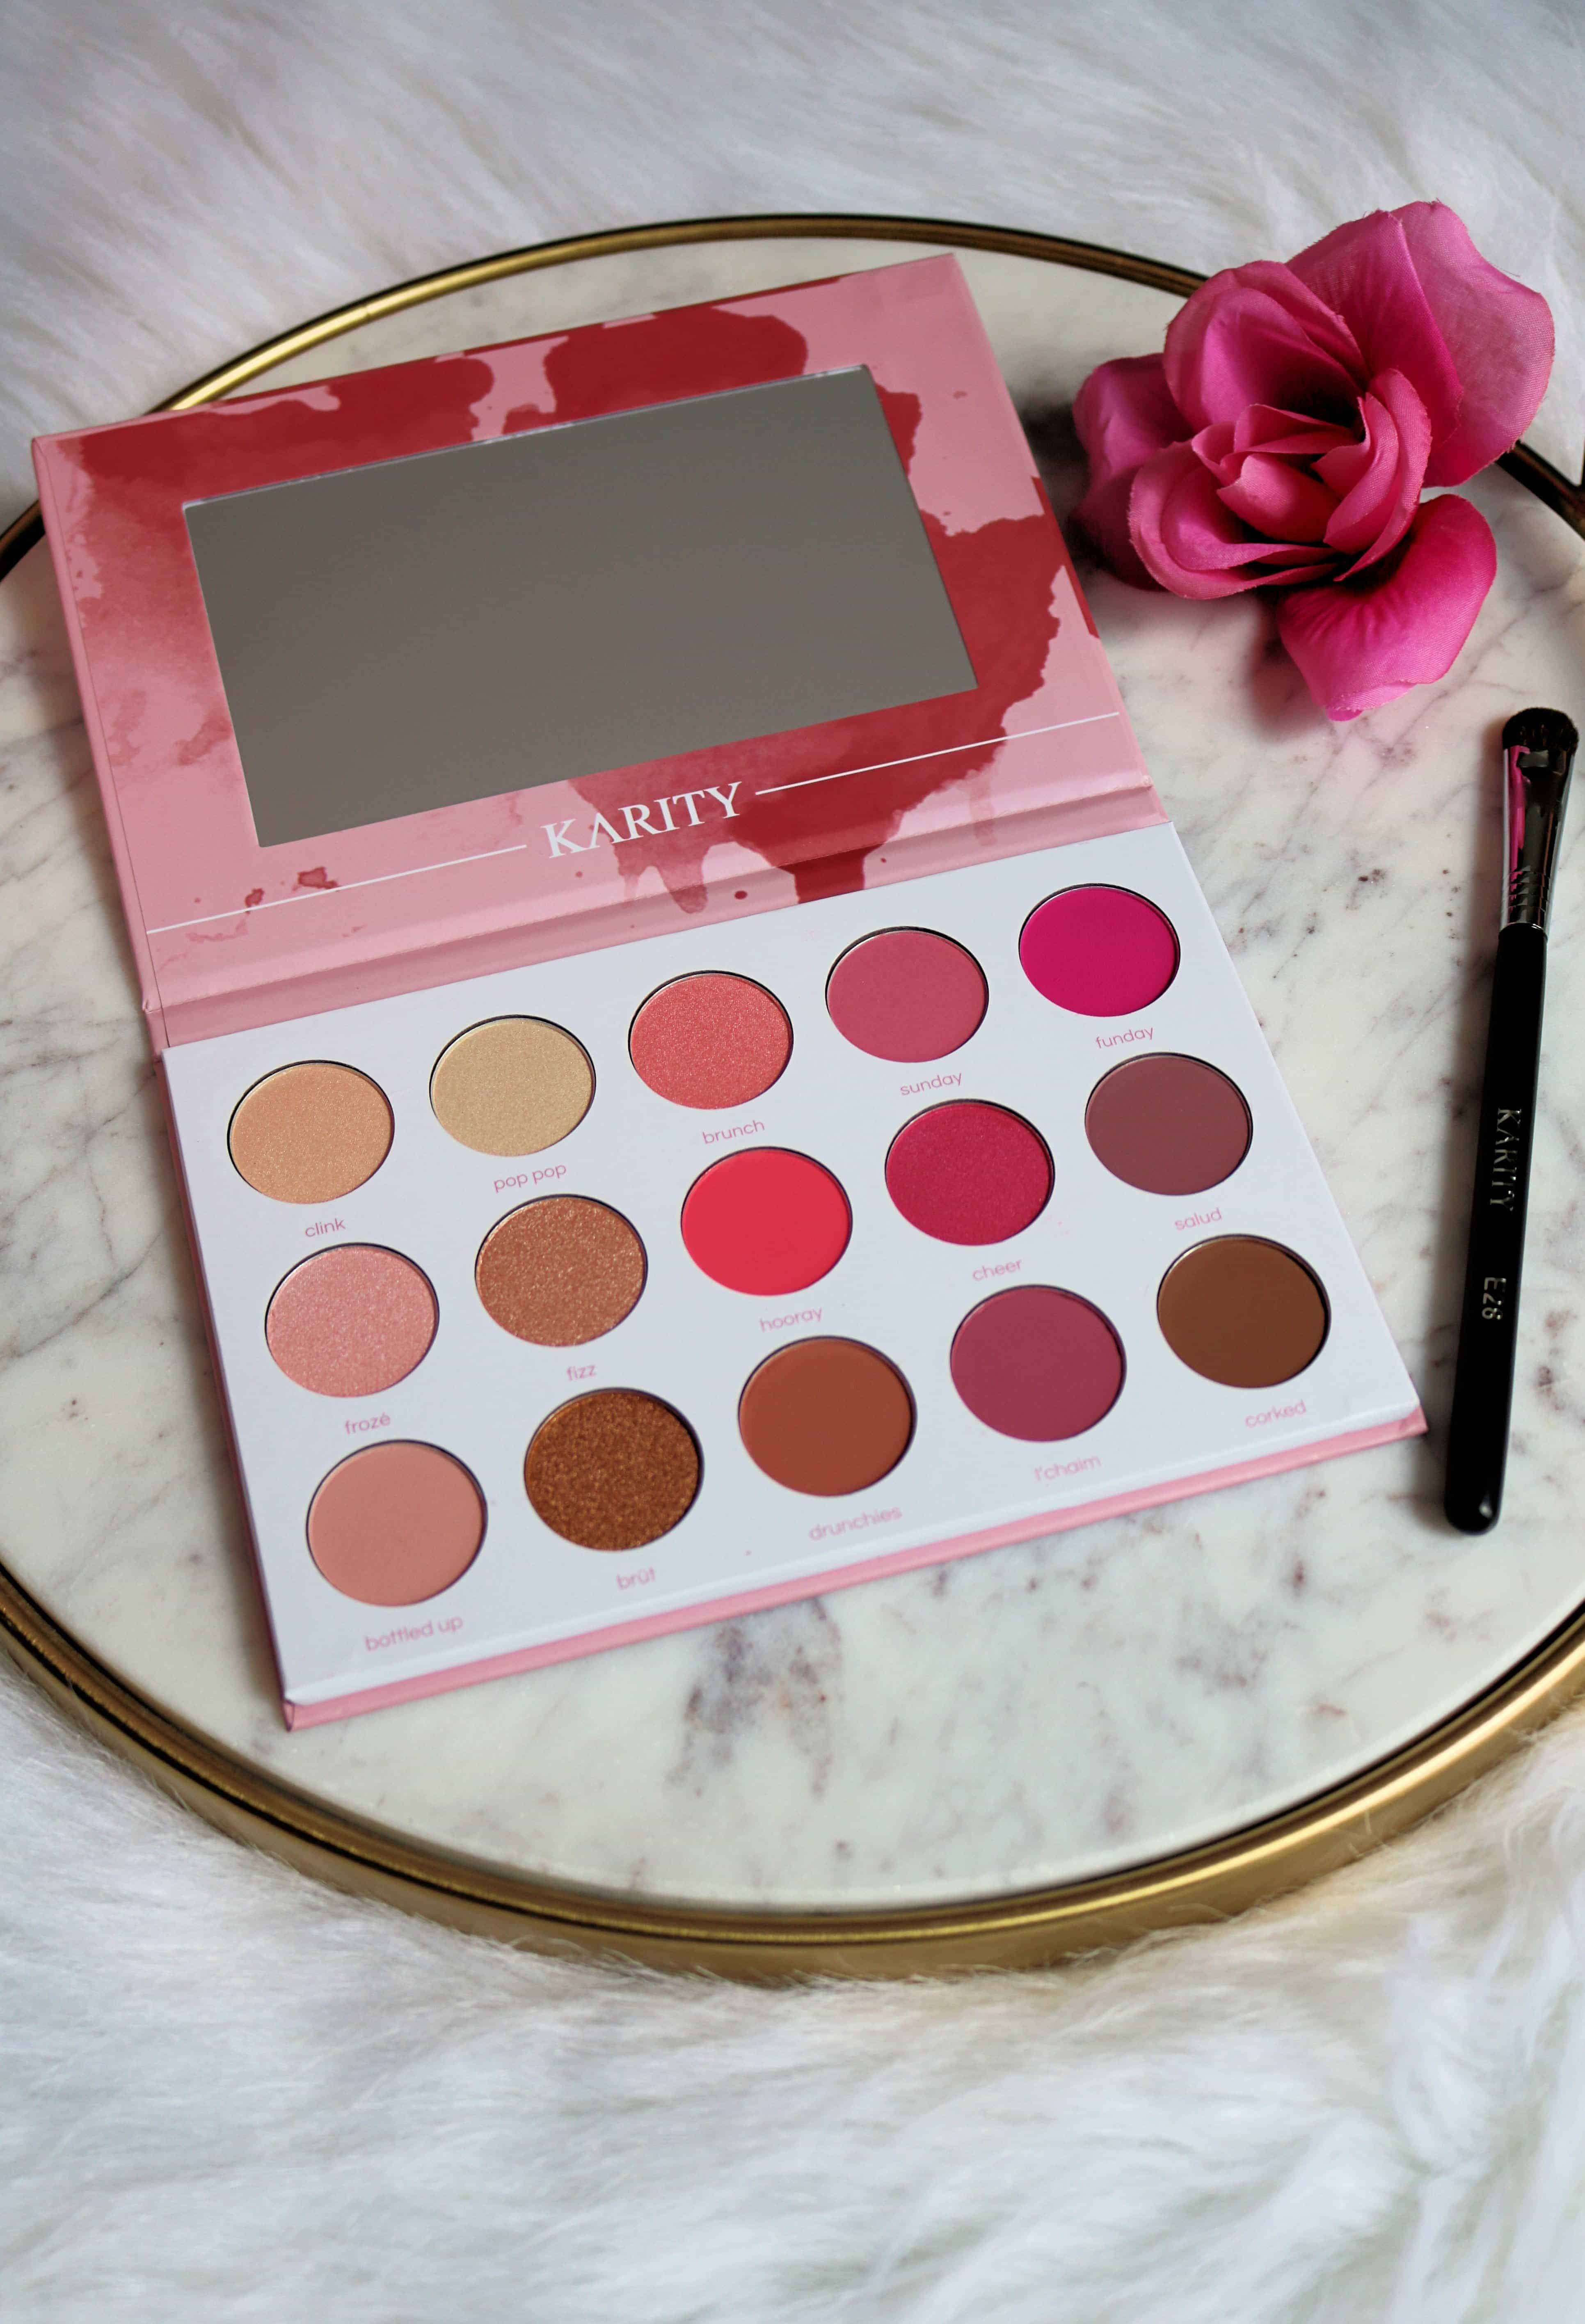 The Karity Rosé All Day Eyeshadow Palette is such a beautiful rose colored palette and it's affordable at less than $20! Check out my full Karity eyeshadow palette review and swatches of all 15 Karity eyeshadow shades. #eyeshadowpalette #makeupreview #karity